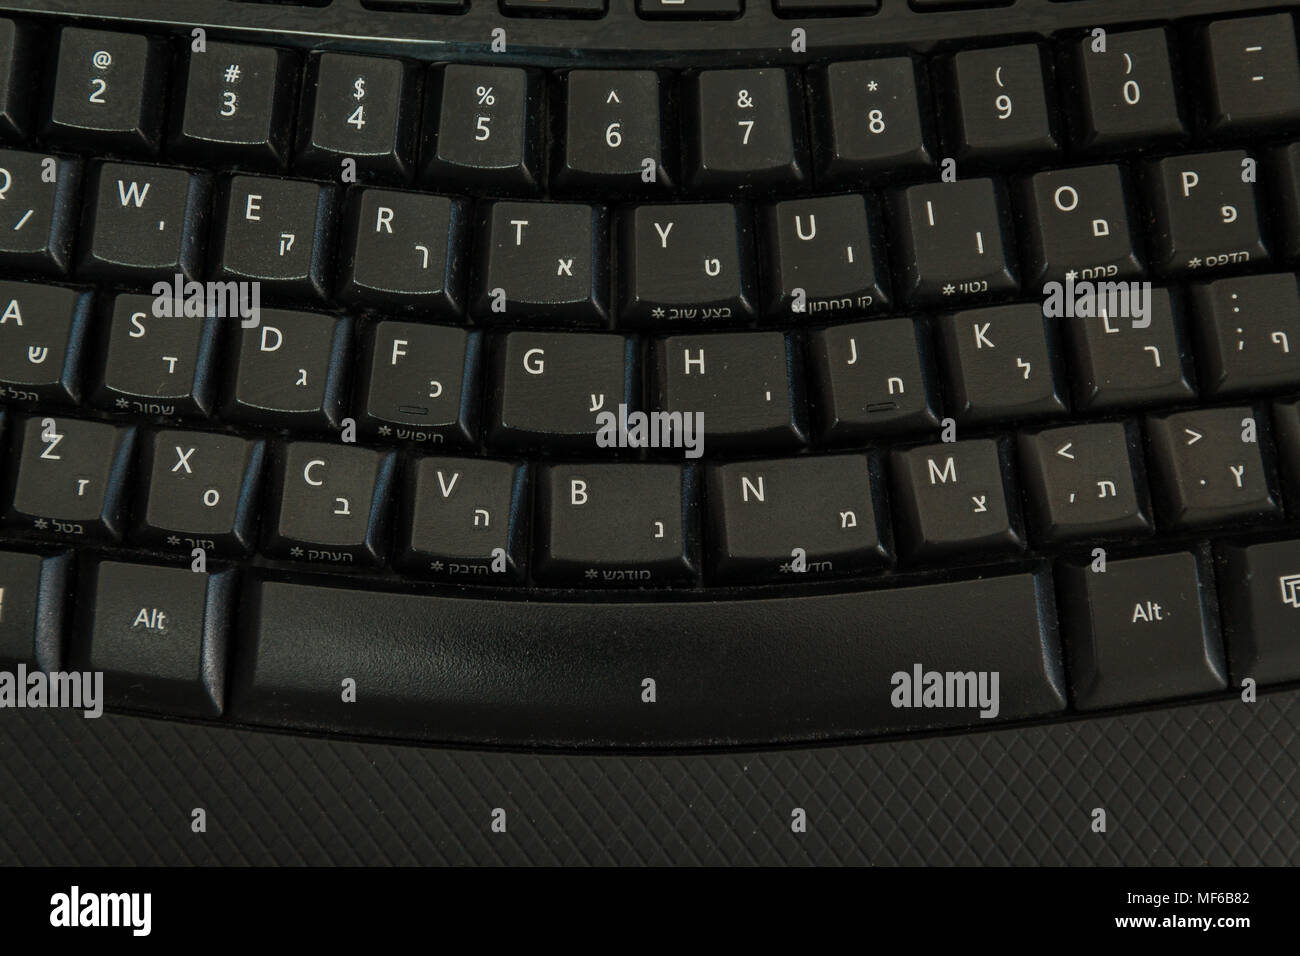 Keyboard with letters in Hebrew and English - Wireless keyboard - Top View - Stock Image